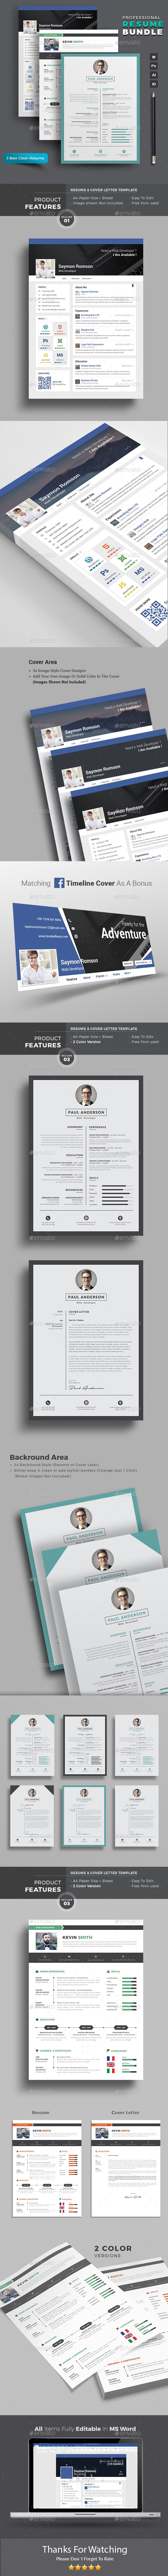 Cute 1 Page Brochure Template Tall 10 Off Coupon Template Flat 2014 Calendar Template Printable 24x36 Poster Template Youthful 3 D Shape Templates Yellow3 Inch Heart Template 25  Best Ideas About Resume Software On Pinterest | Office Hacks ..